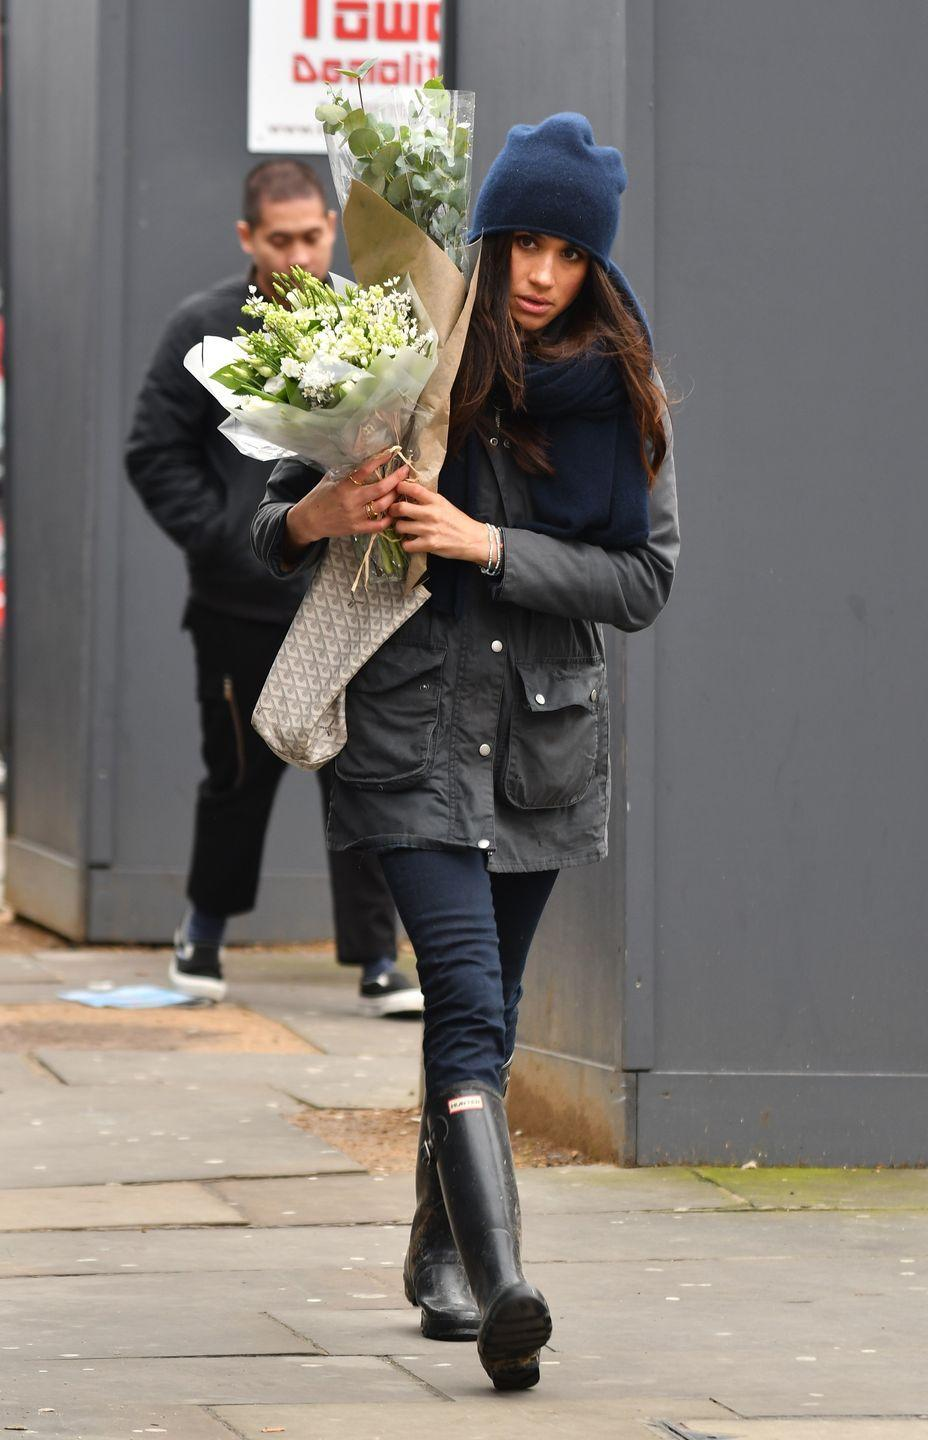 """<p>While shopping for flowers on Kensington High Street, Markle wears a Barbour jacket and Hunter wellingtons.</p><p><a class=""""link rapid-noclick-resp"""" href=""""https://go.redirectingat.com?id=74968X1596630&url=https%3A%2F%2Fwww.neimanmarcus.com%2FHunter-Boot-Original-Tall-Gloss-Rain-Boot%2Fprod195770226%2Fp.prod&sref=https%3A%2F%2Fwww.townandcountrymag.com%2Fstyle%2Ffashion-trends%2Fg3272%2Fmeghan-markle-preppy-style%2F"""" rel=""""nofollow noopener"""" target=""""_blank"""" data-ylk=""""slk:SHOP NOW"""">SHOP NOW</a> <em>Hunter Boot Original Tall Gloss Rain Boot, $150</em><br></p>"""